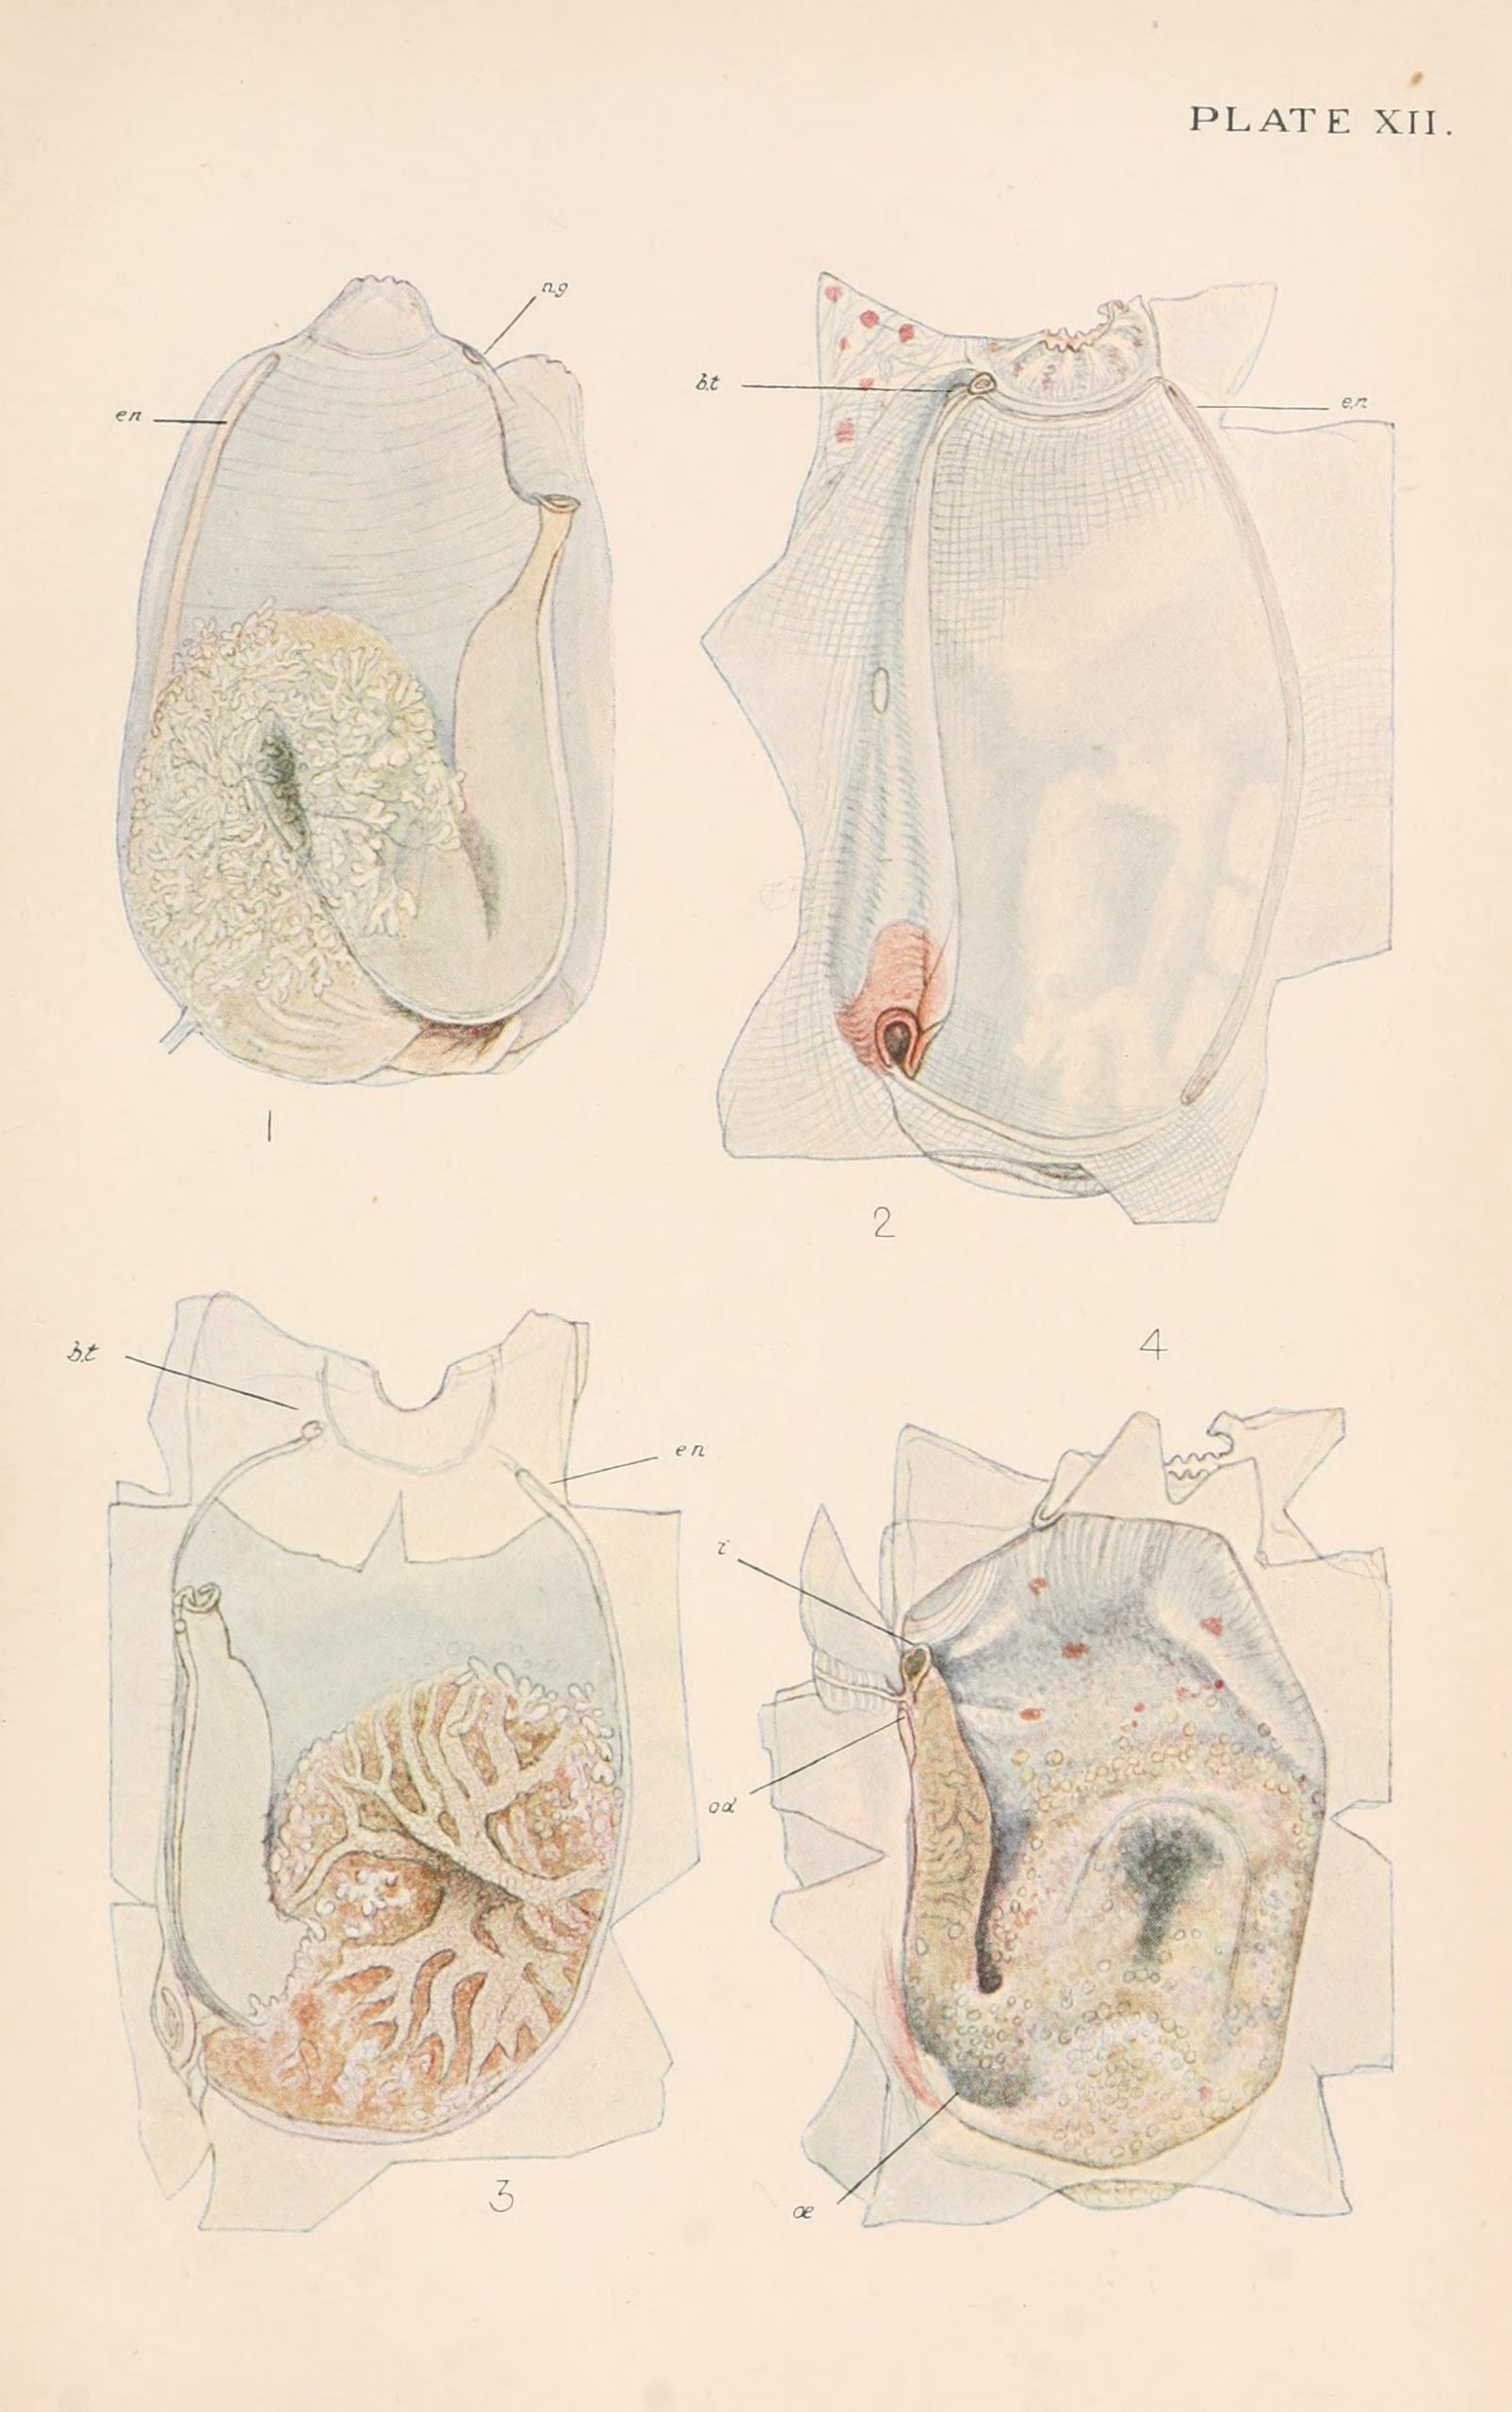 Dissected views of a sea squirt